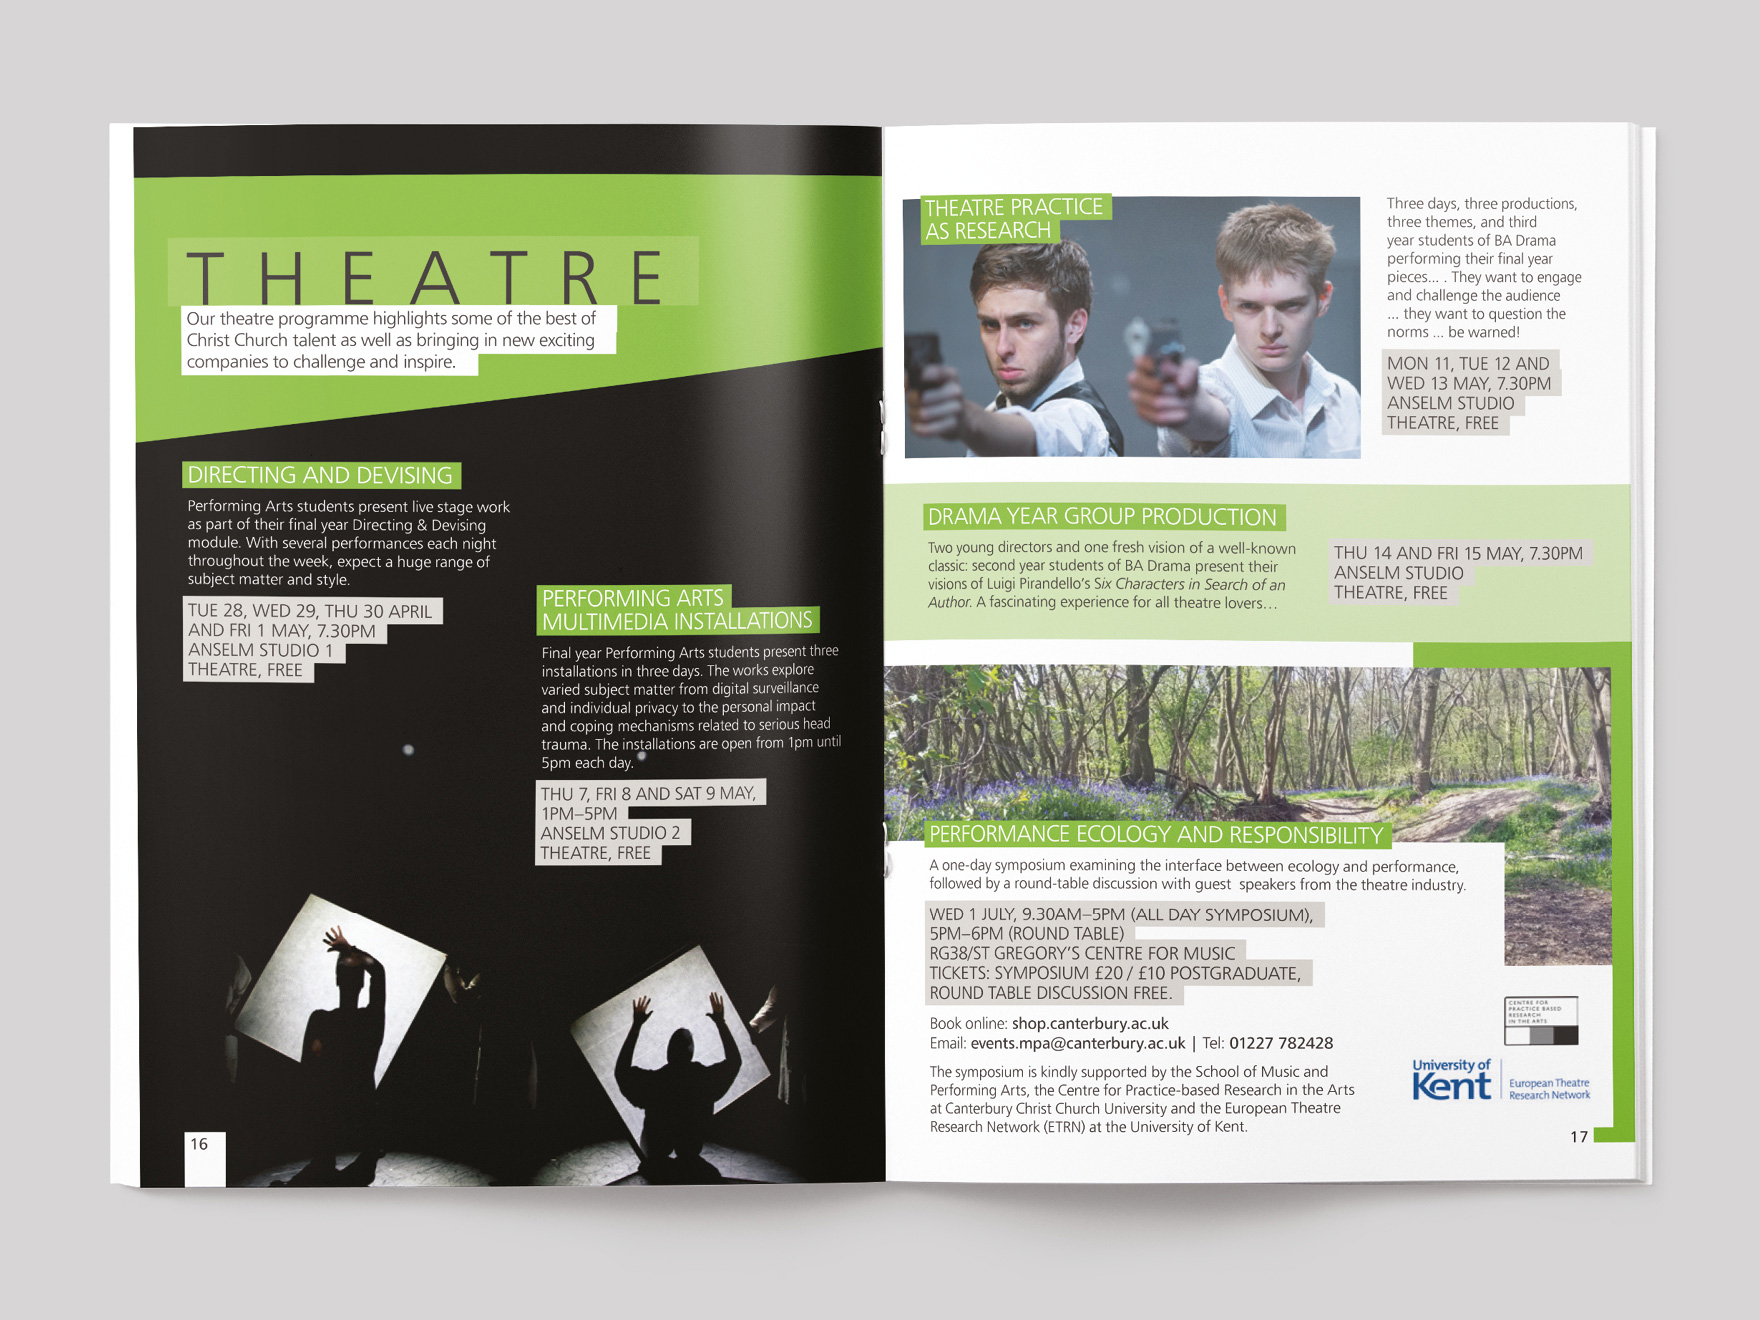 Inside pages from Arts & Culture magazine, showing the theatre section